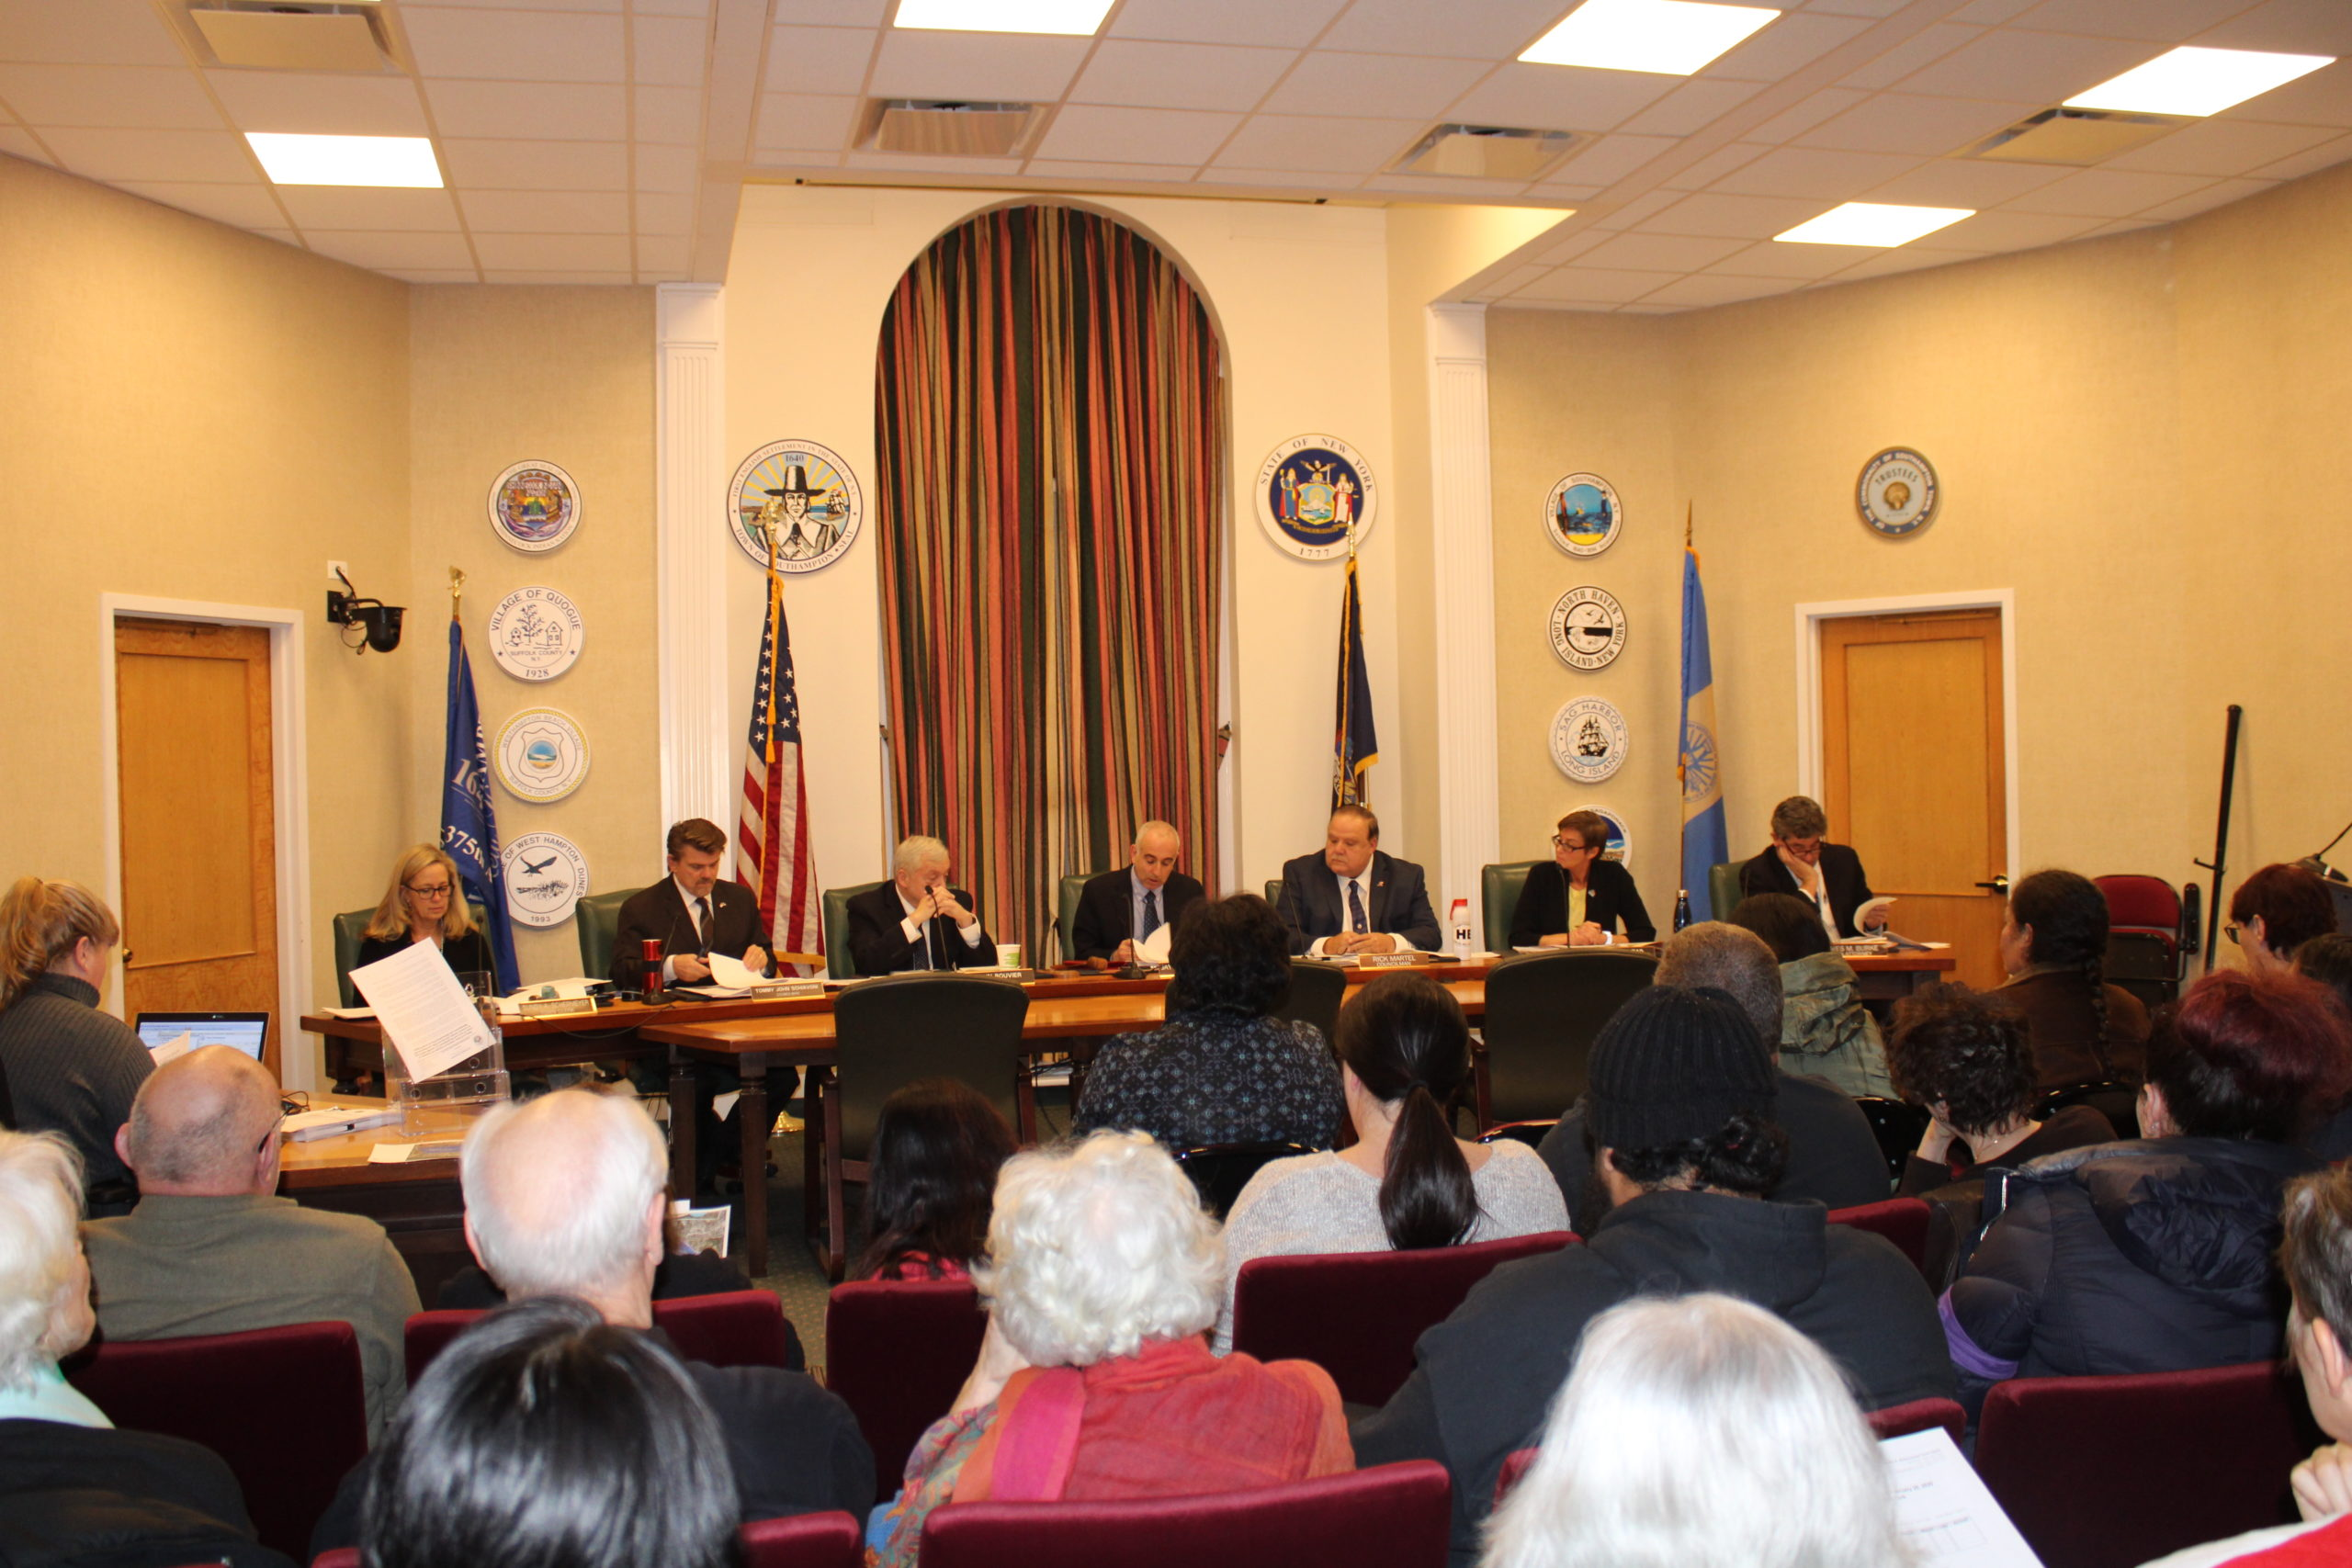 The Southampton Town Board unanimously approved the preservation of vacant parcels of land around the protest site at 513 Montauk Highway.